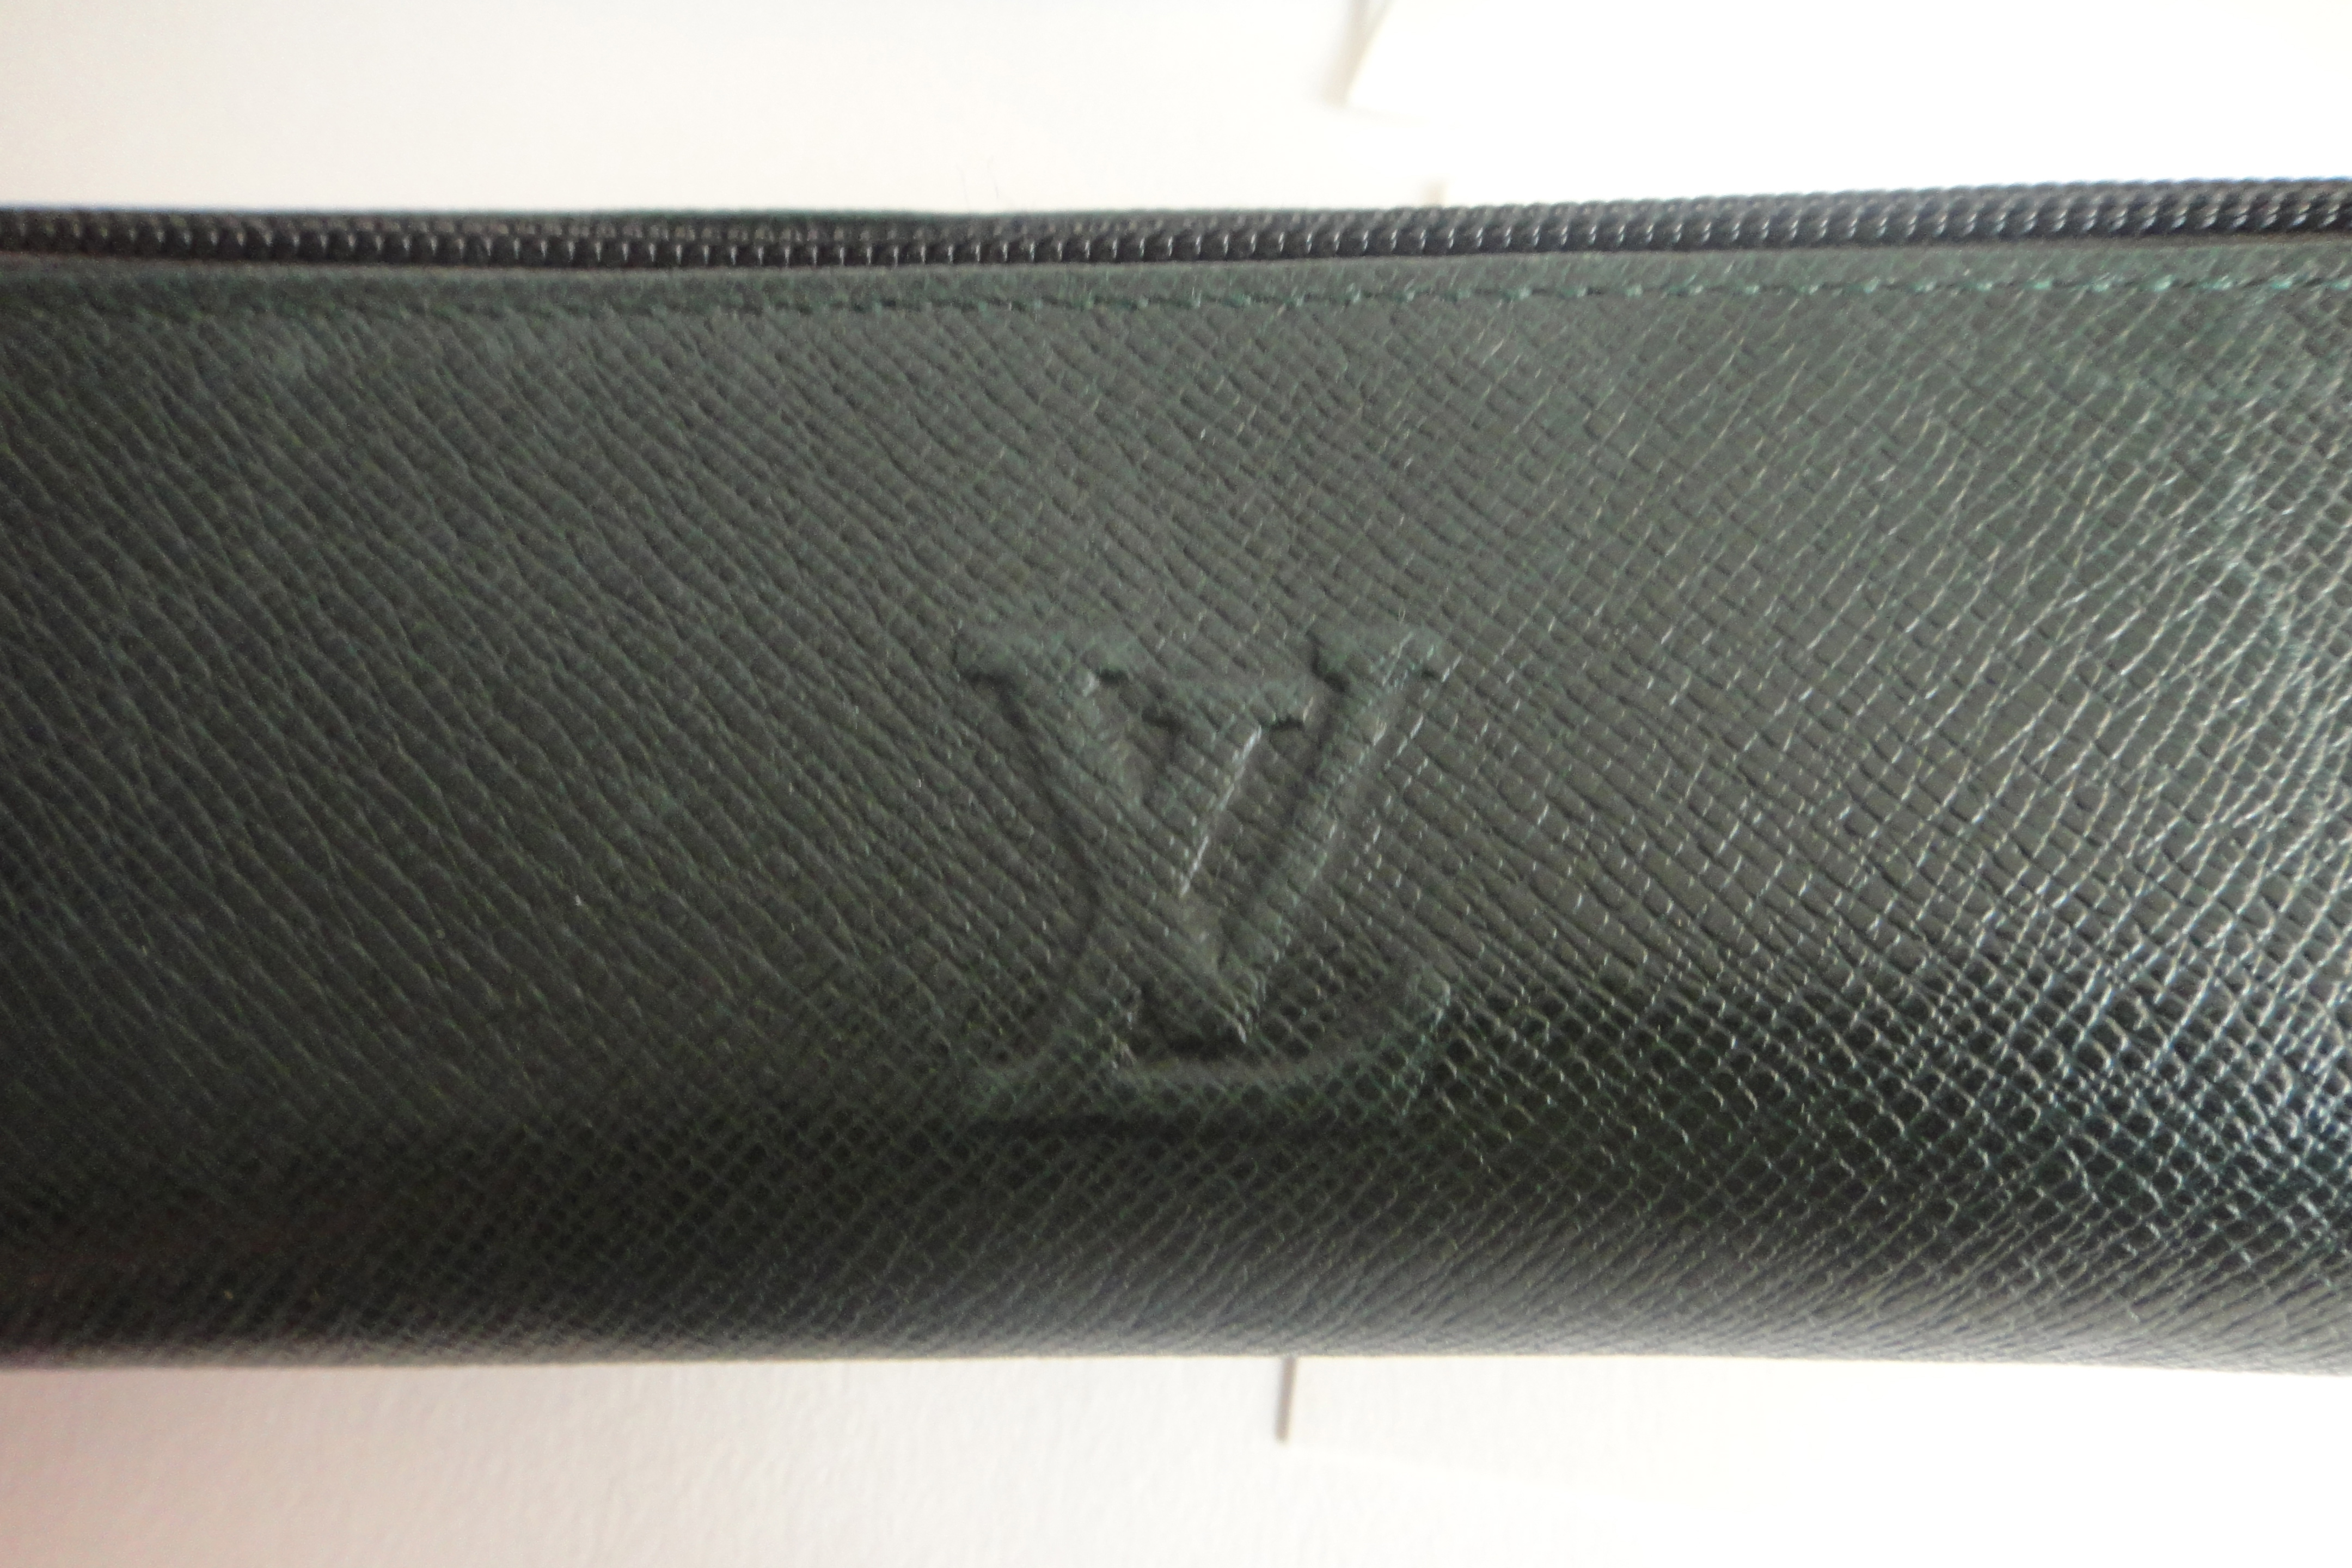 LV Trousse Crayons - Detail